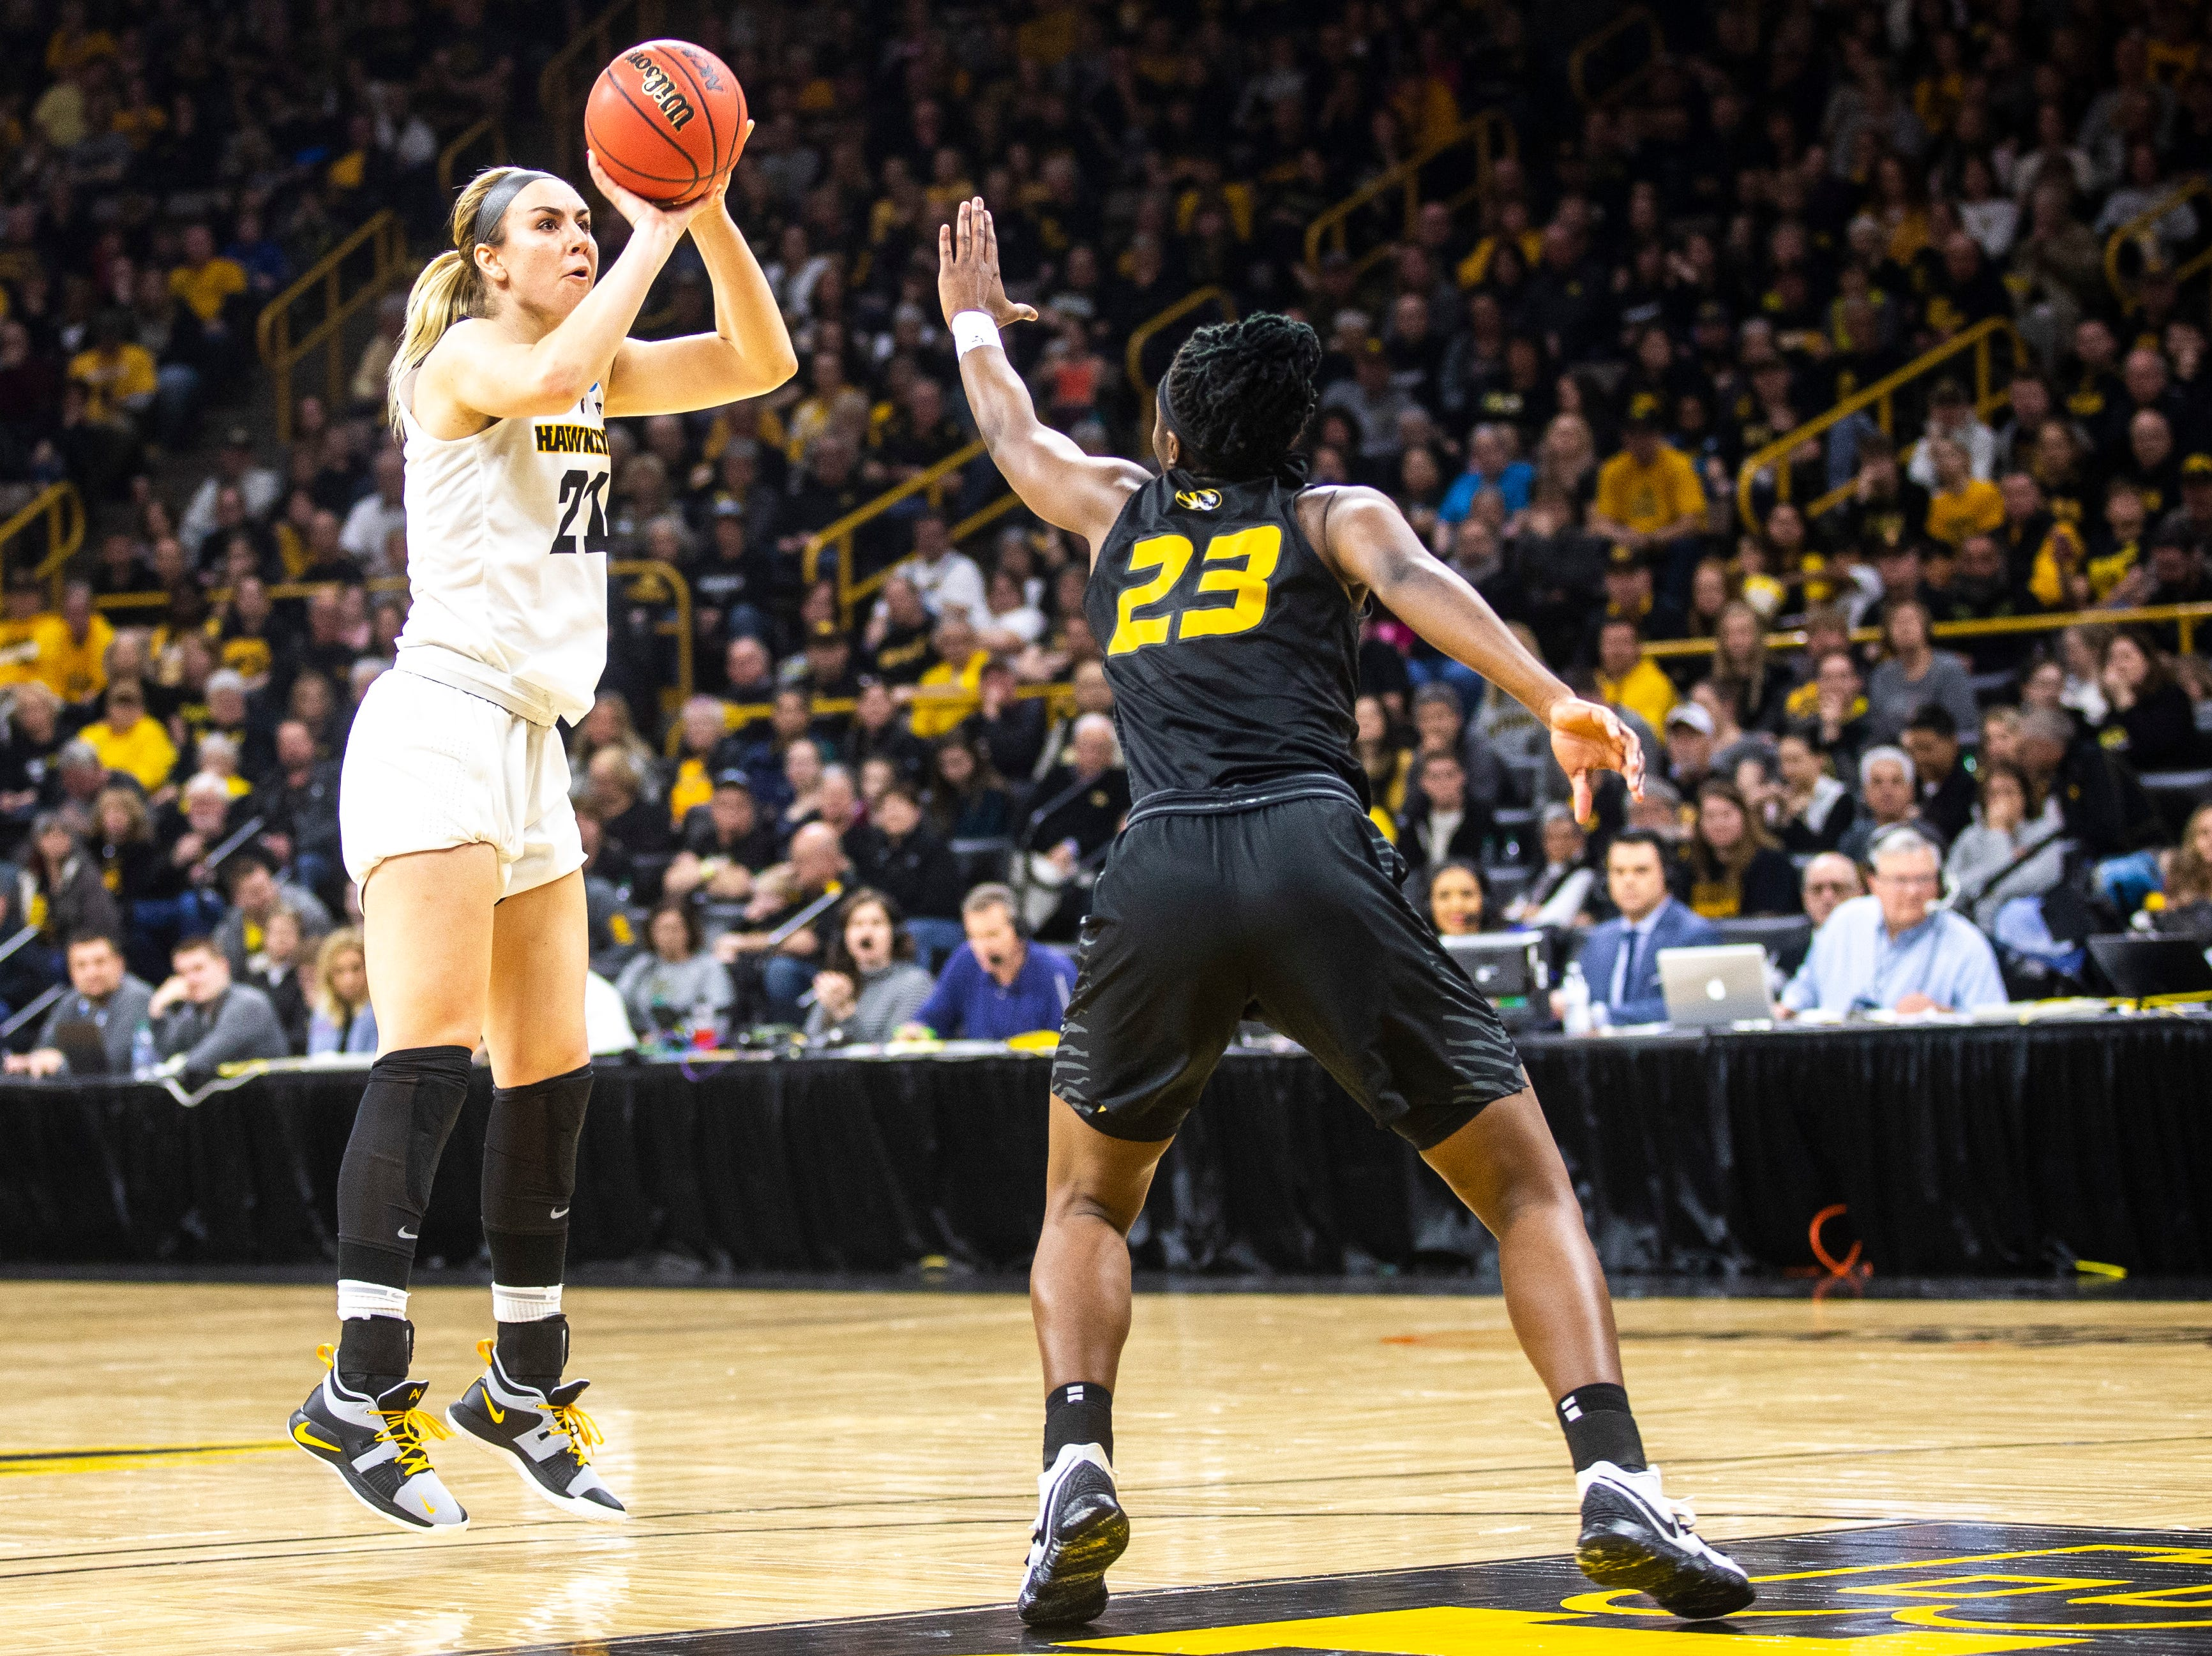 Iowa forward Hannah Stewart (21) shoots a basket against Missouri guard Amber Smith (23) during a NCAA women's basketball tournament second-round game, Sunday, March 24, 2019, at Carver-Hawkeye Arena in Iowa City, Iowa.